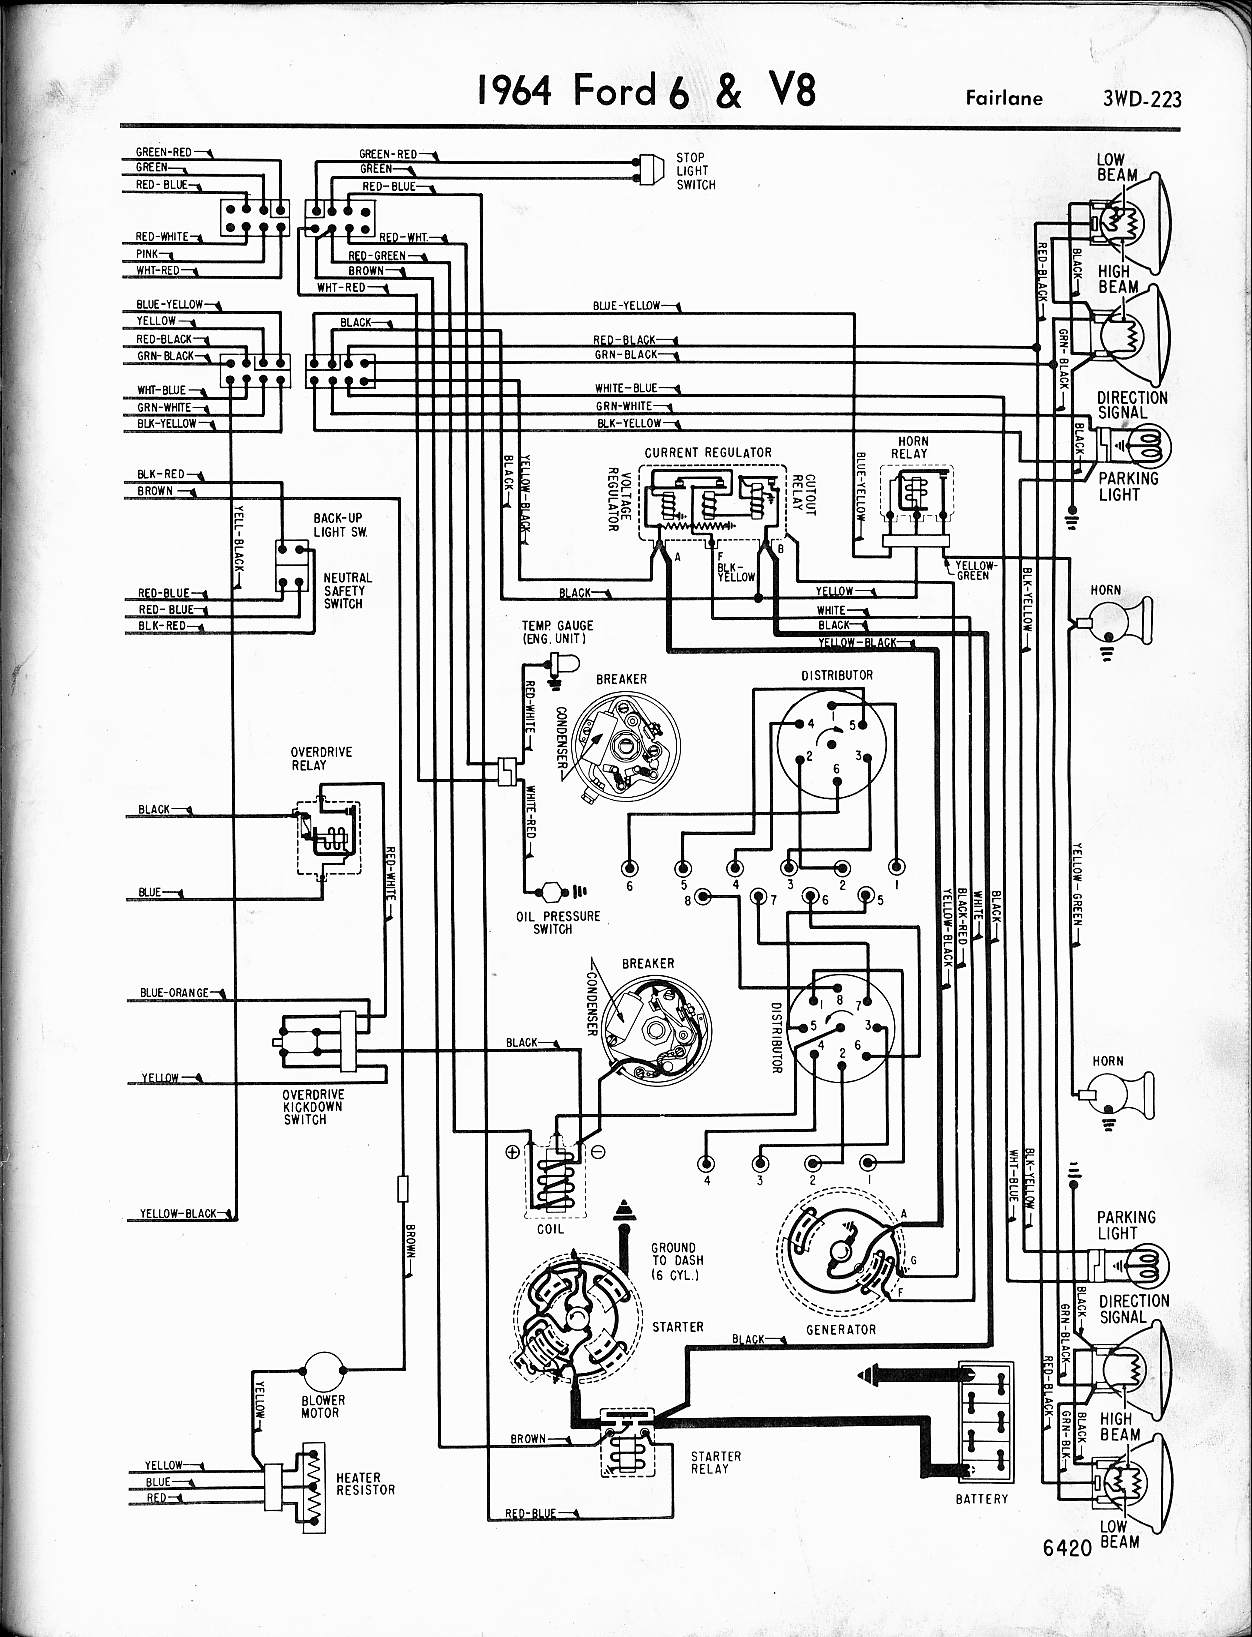 MWire5765 223 57 65 ford wiring diagrams Ford E 350 Wiring Diagrams at honlapkeszites.co